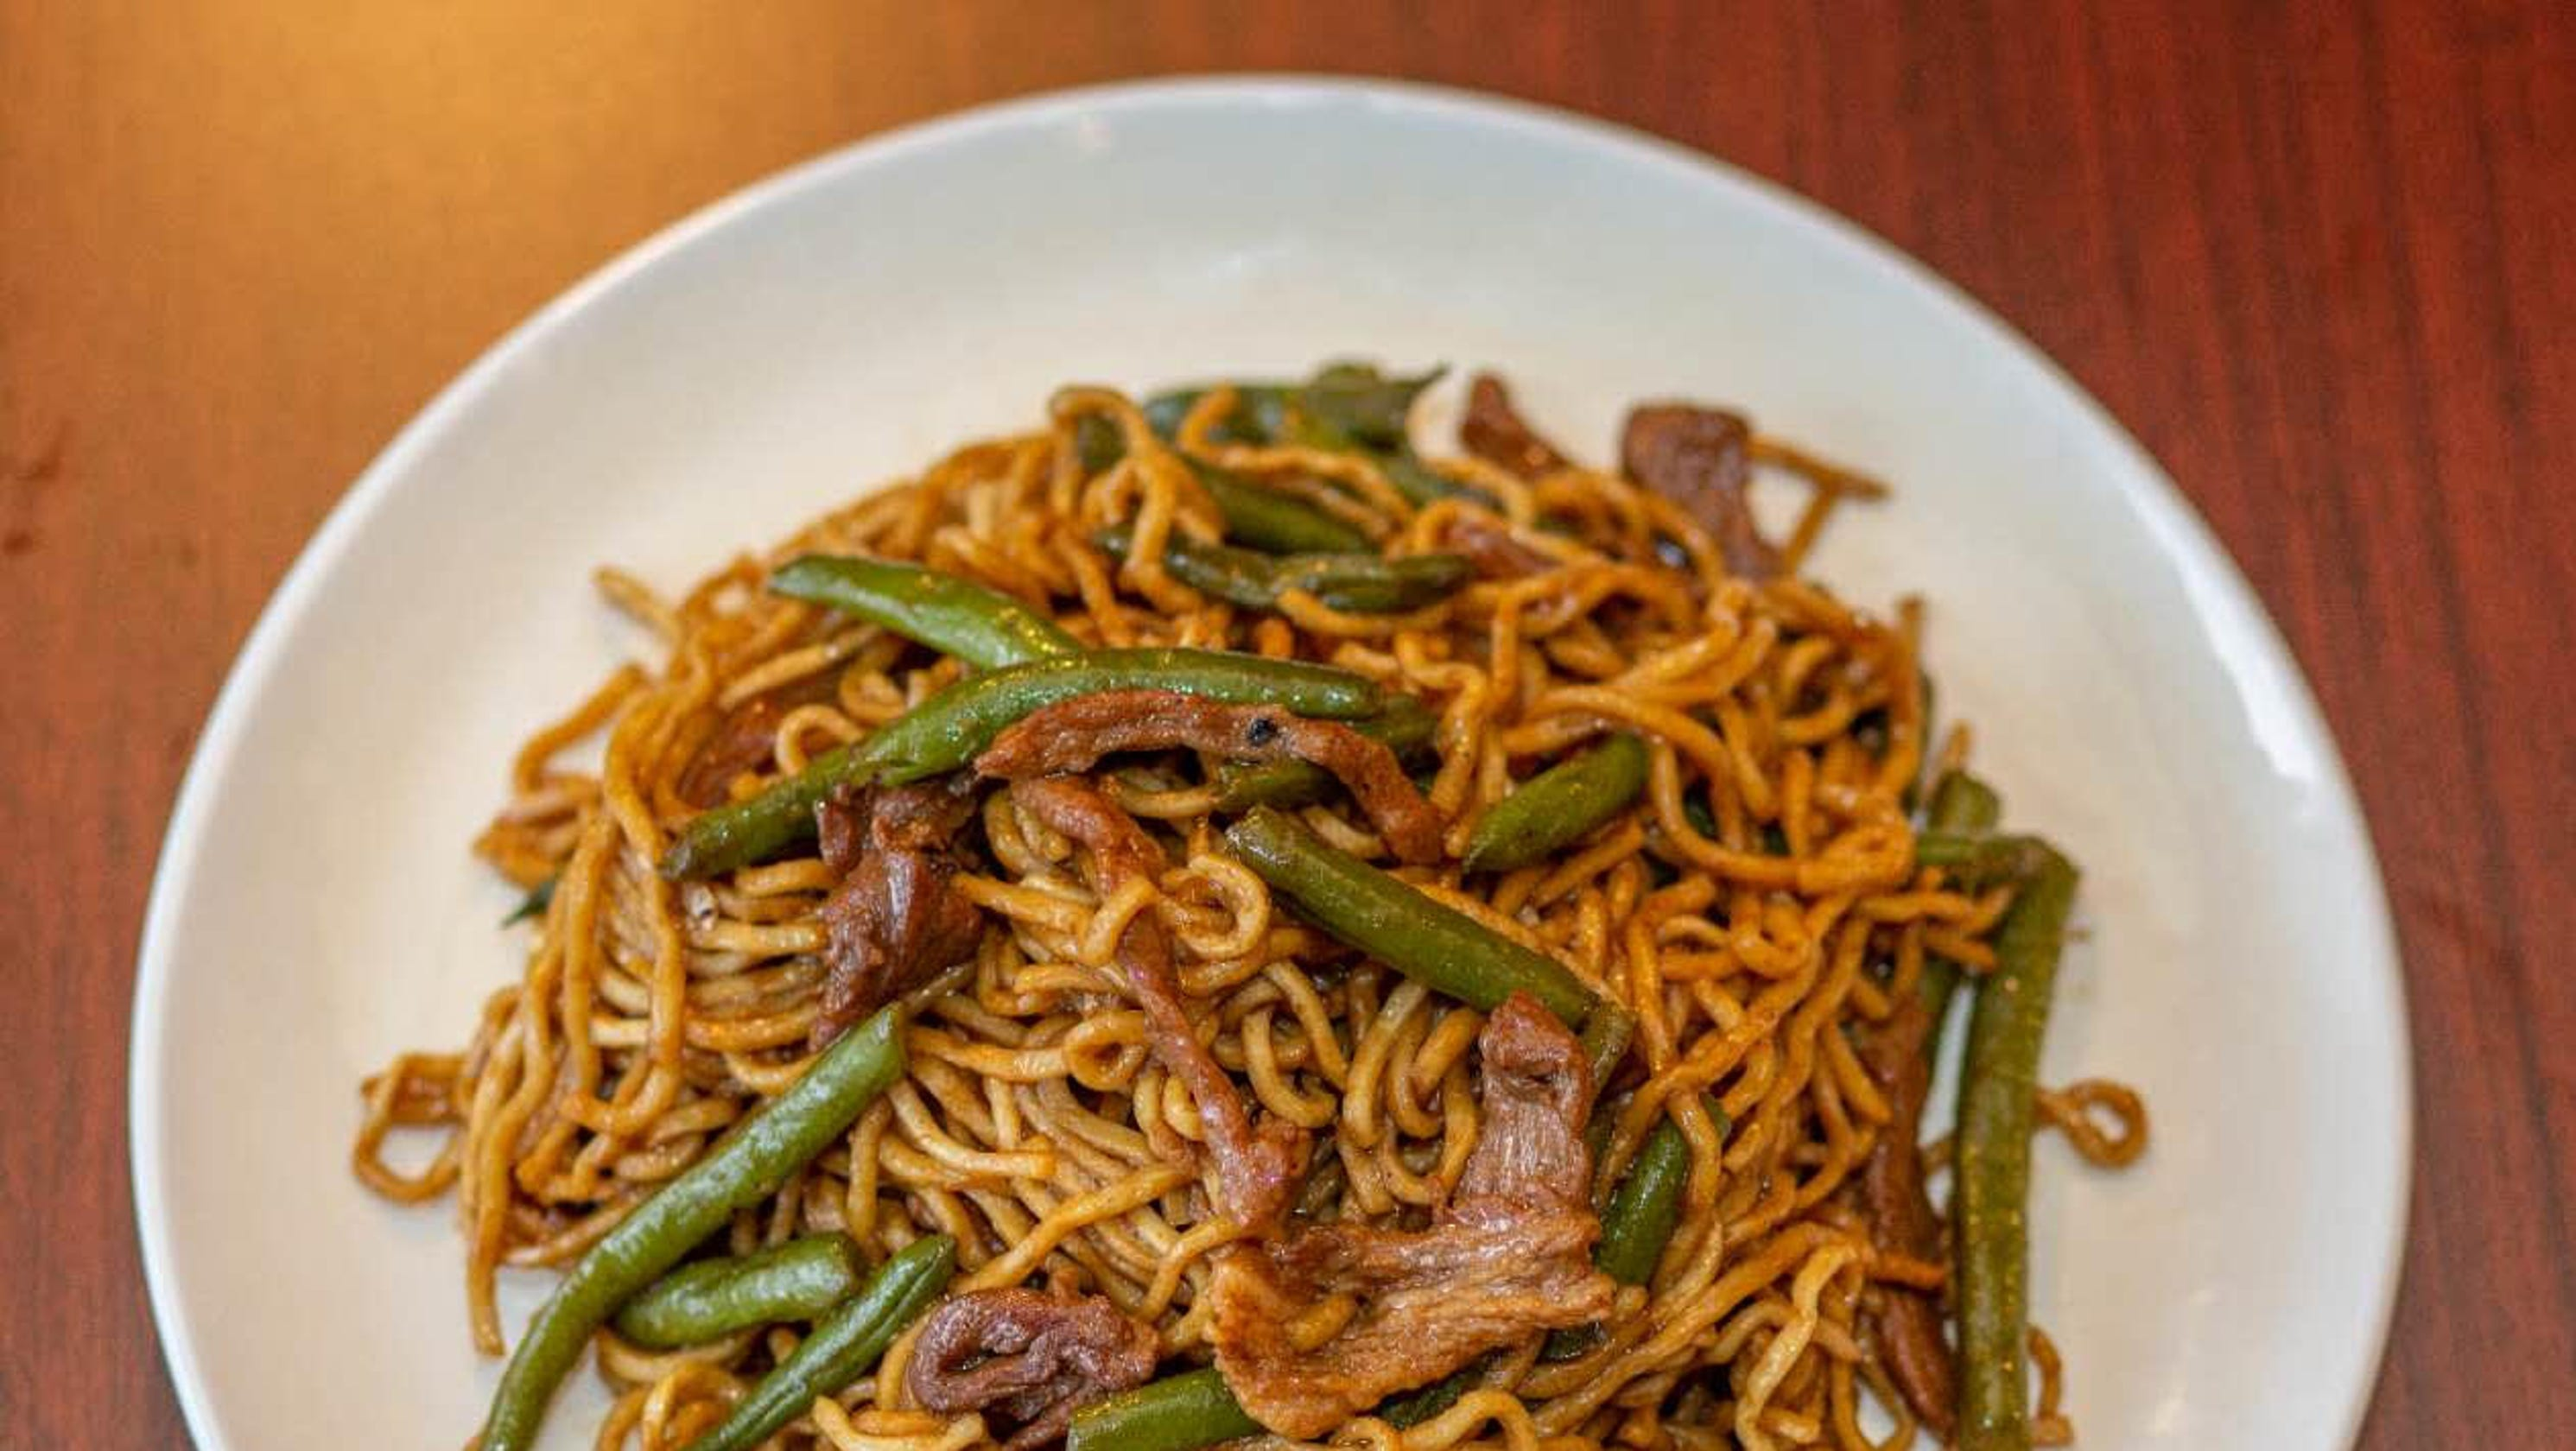 Beijing Noodle restaurant opens with traditional Chinese recipes